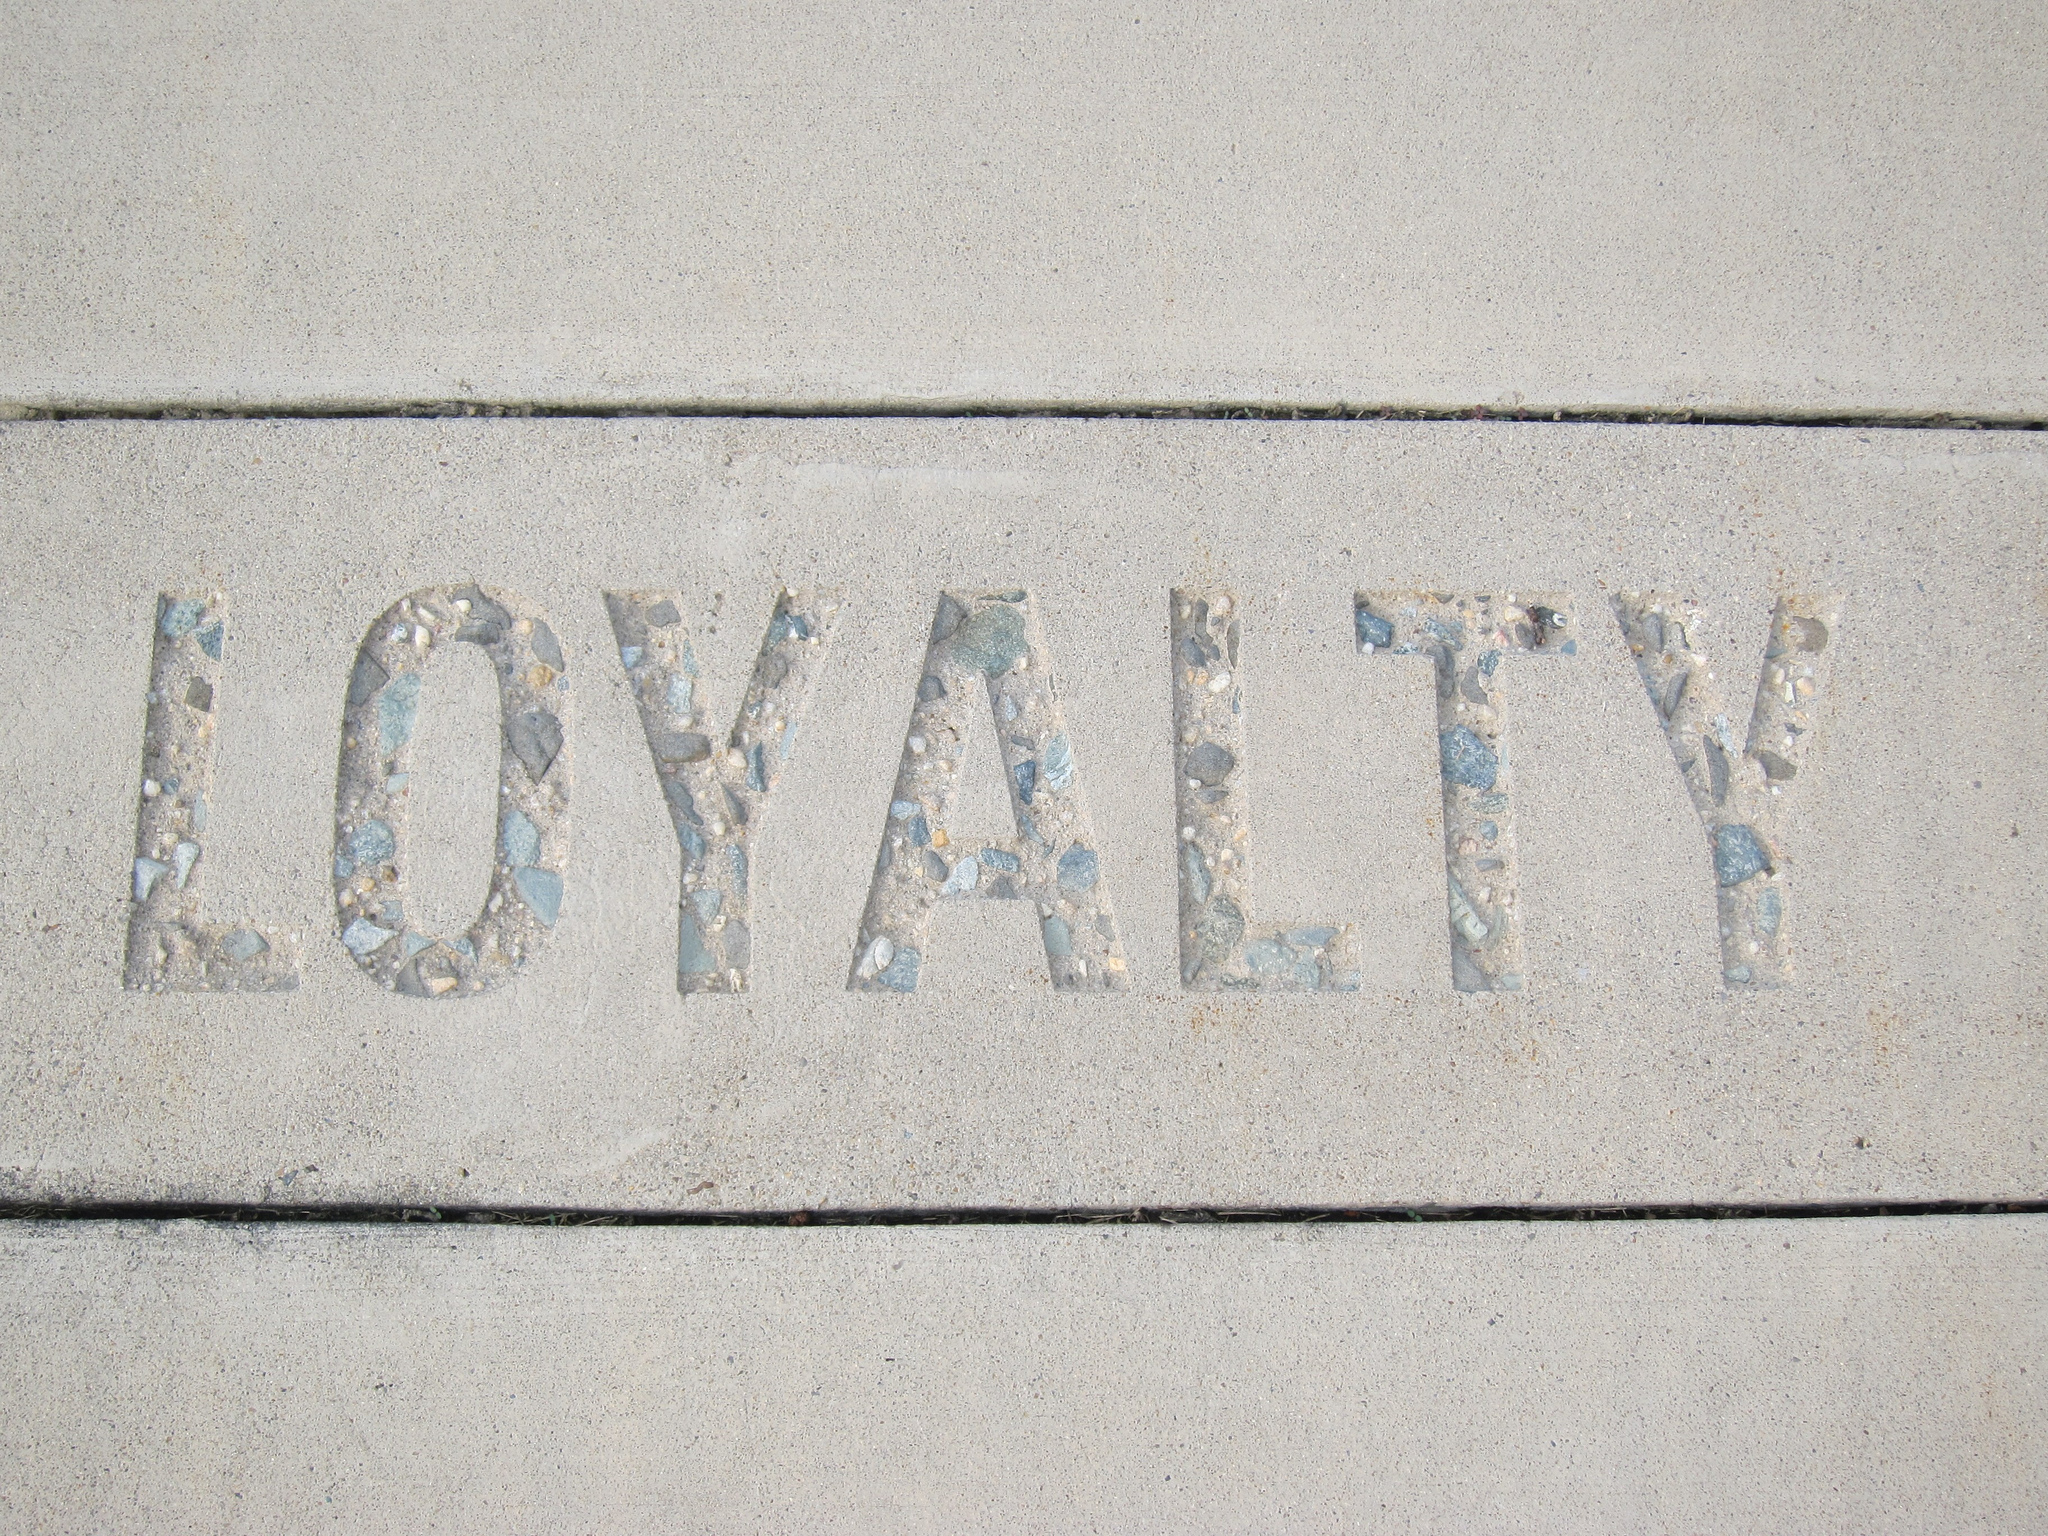 loyalty-by-ucffool-on-flickr